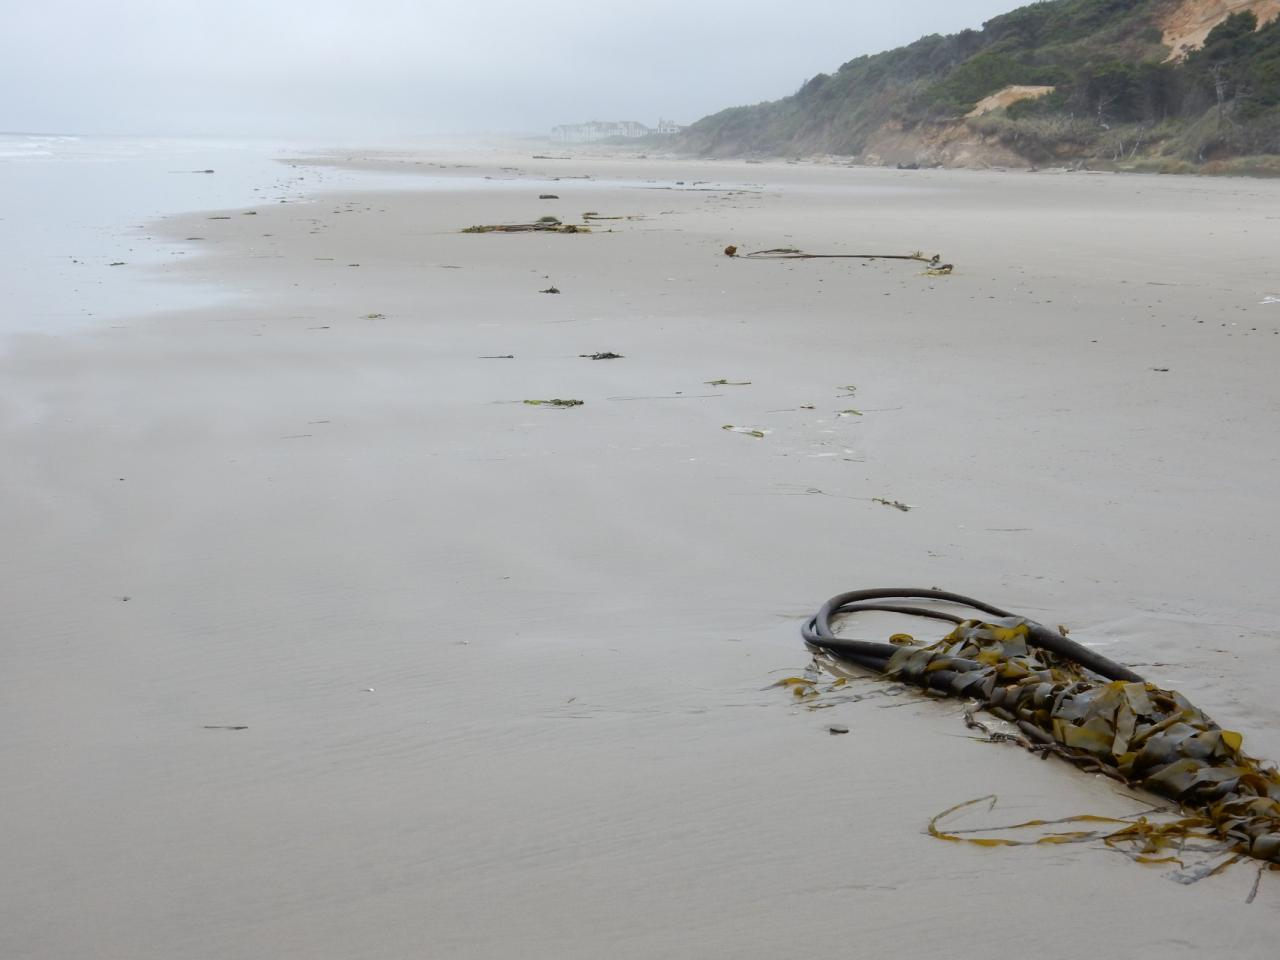 This much kelp hasn't been seen on previous visits. Winter die-offs?